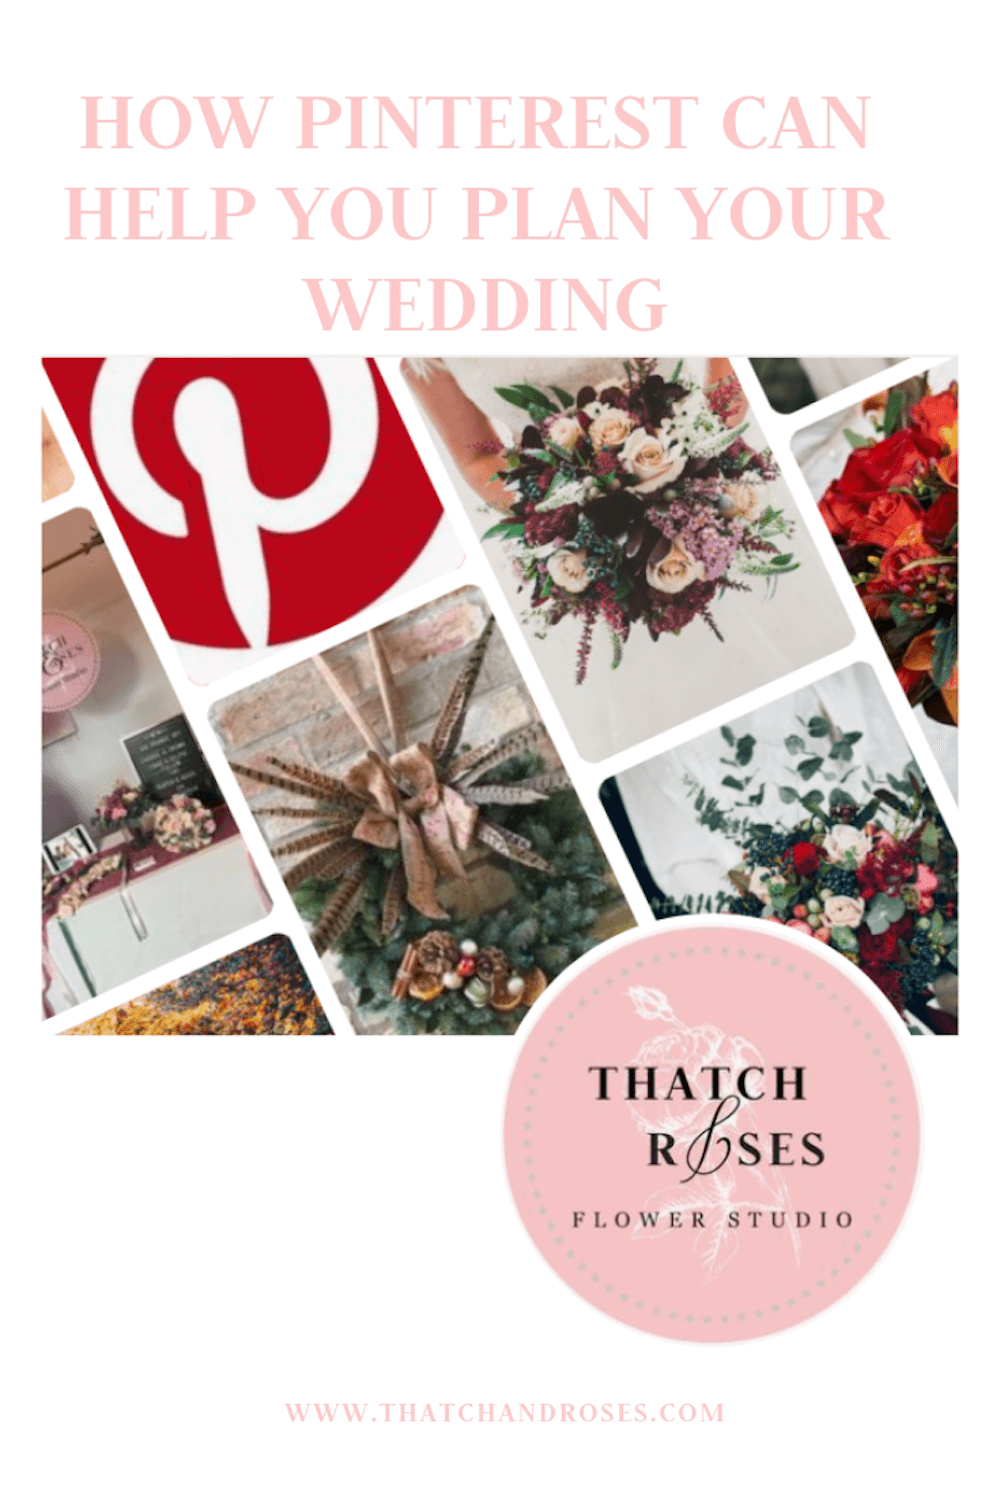 how pinterest can help you plan your wedding.png